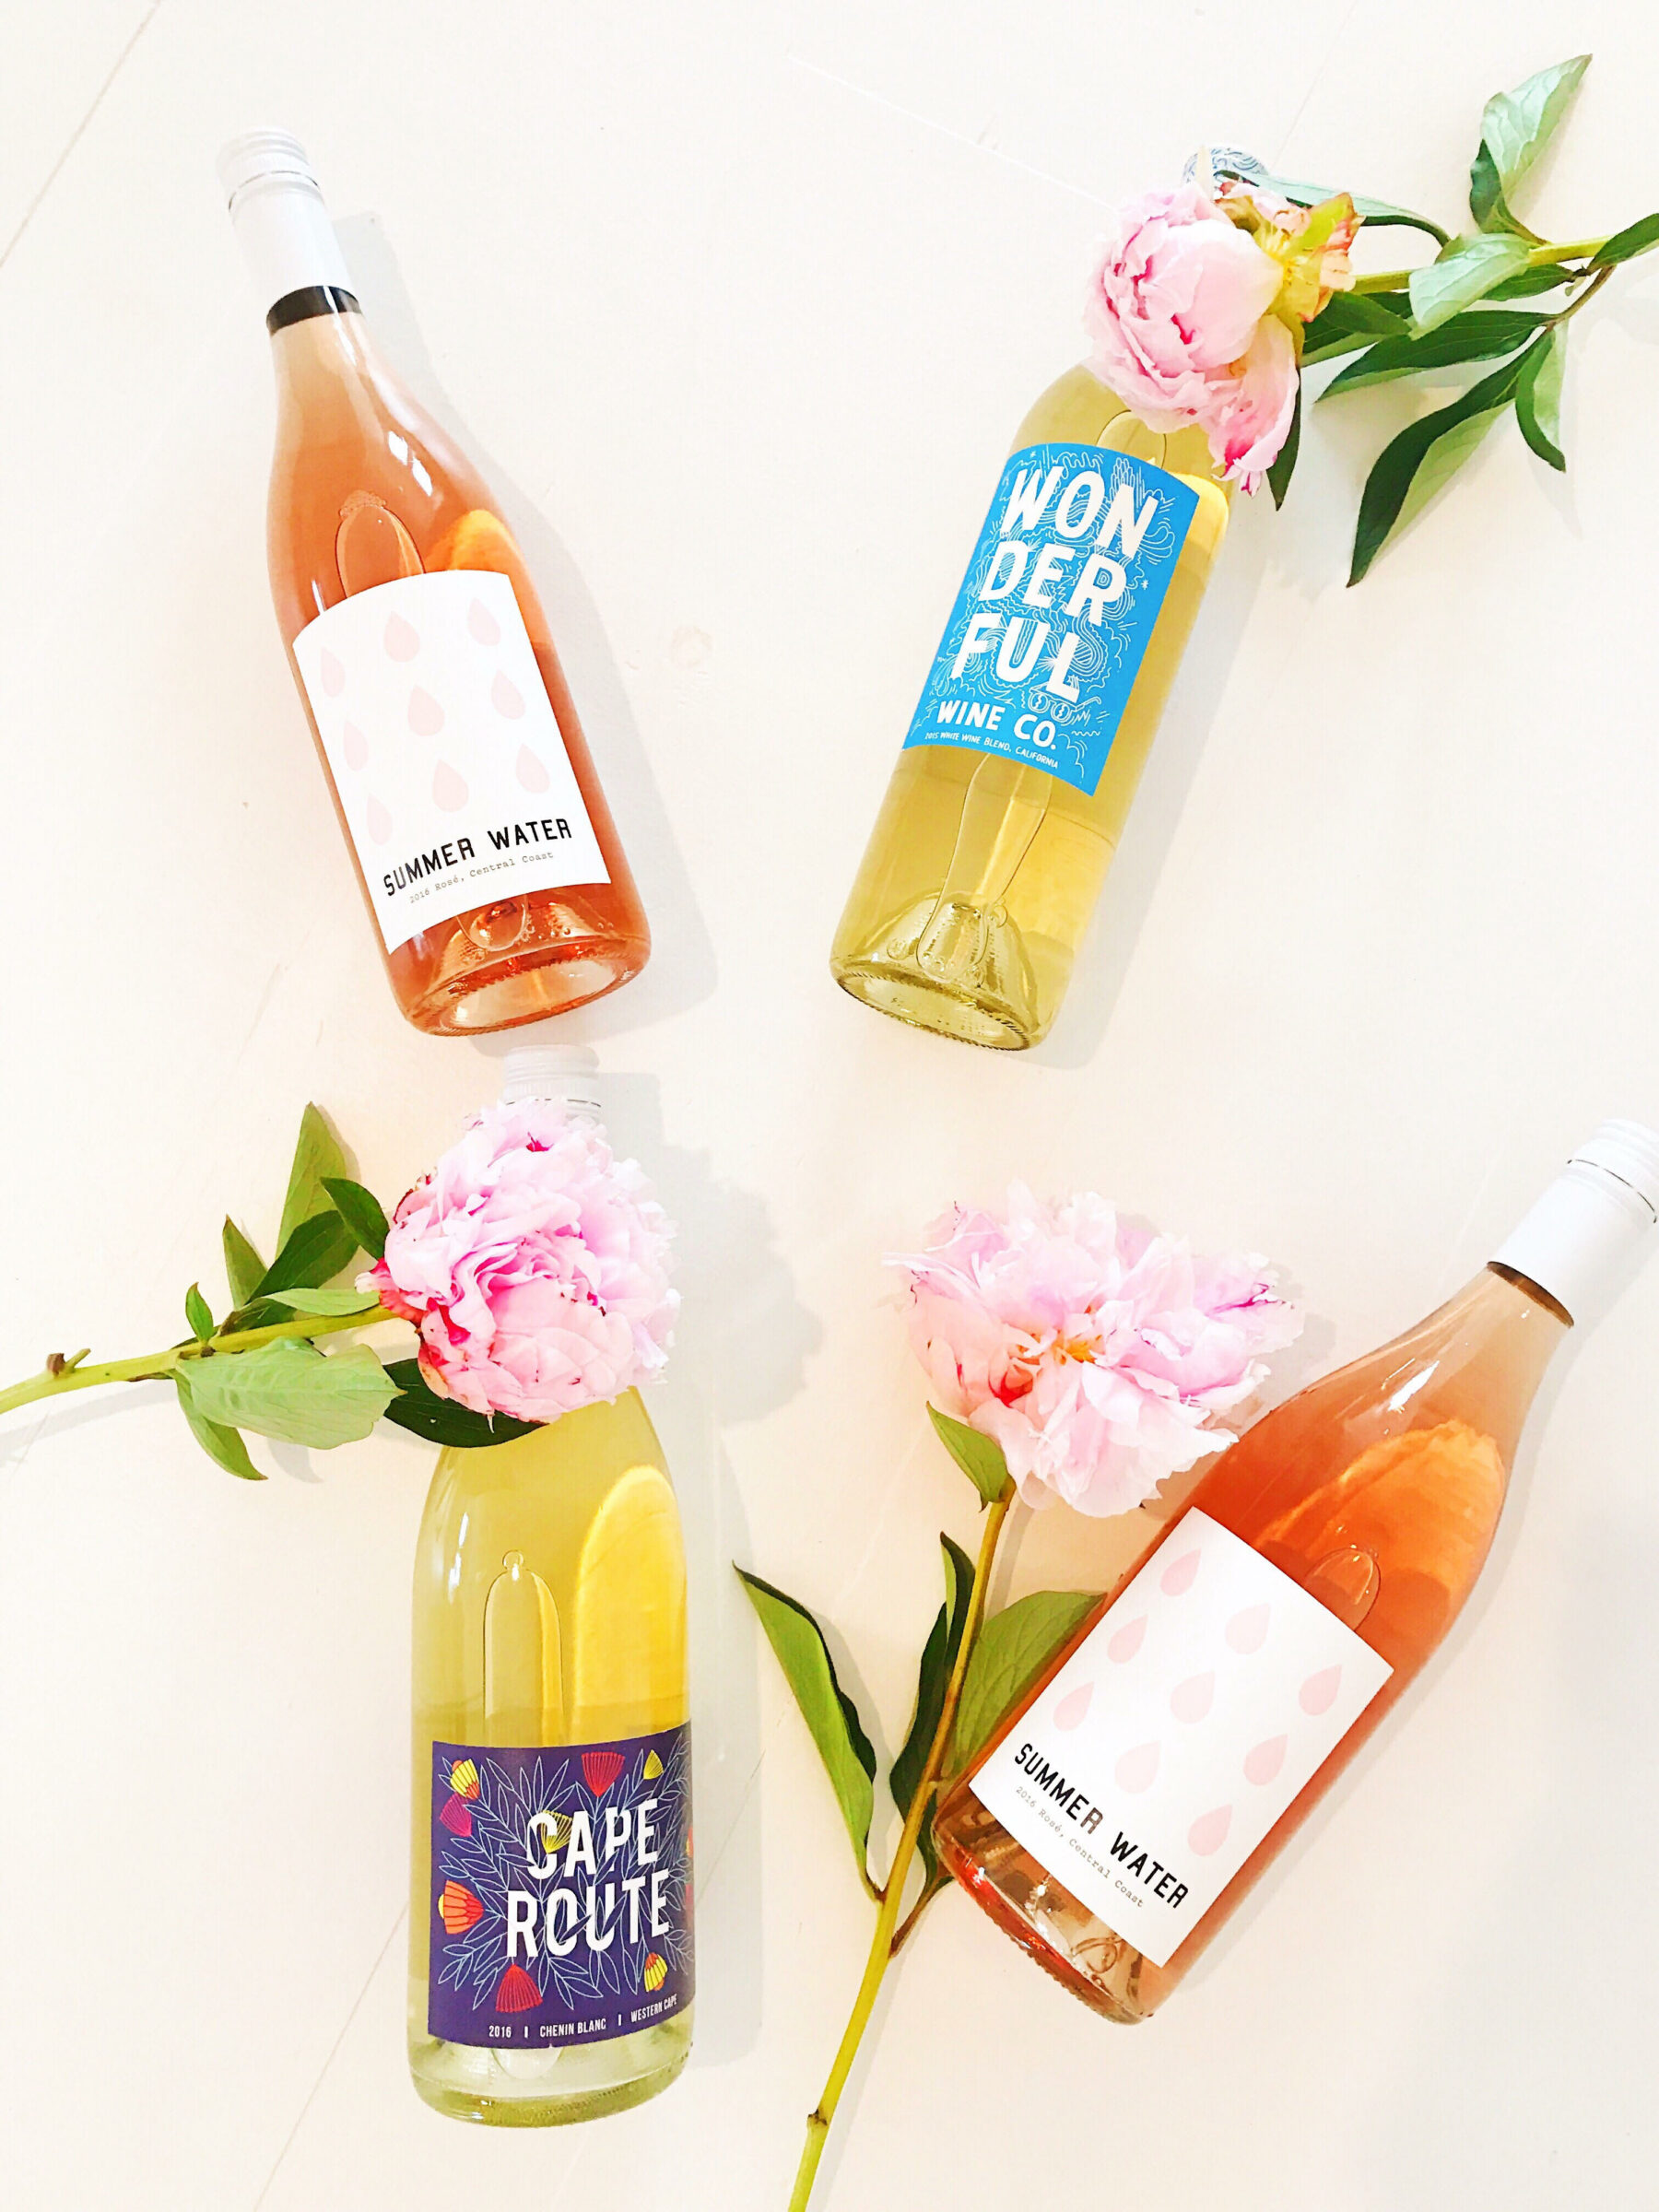 4 bottles of wine for $27 with Winc